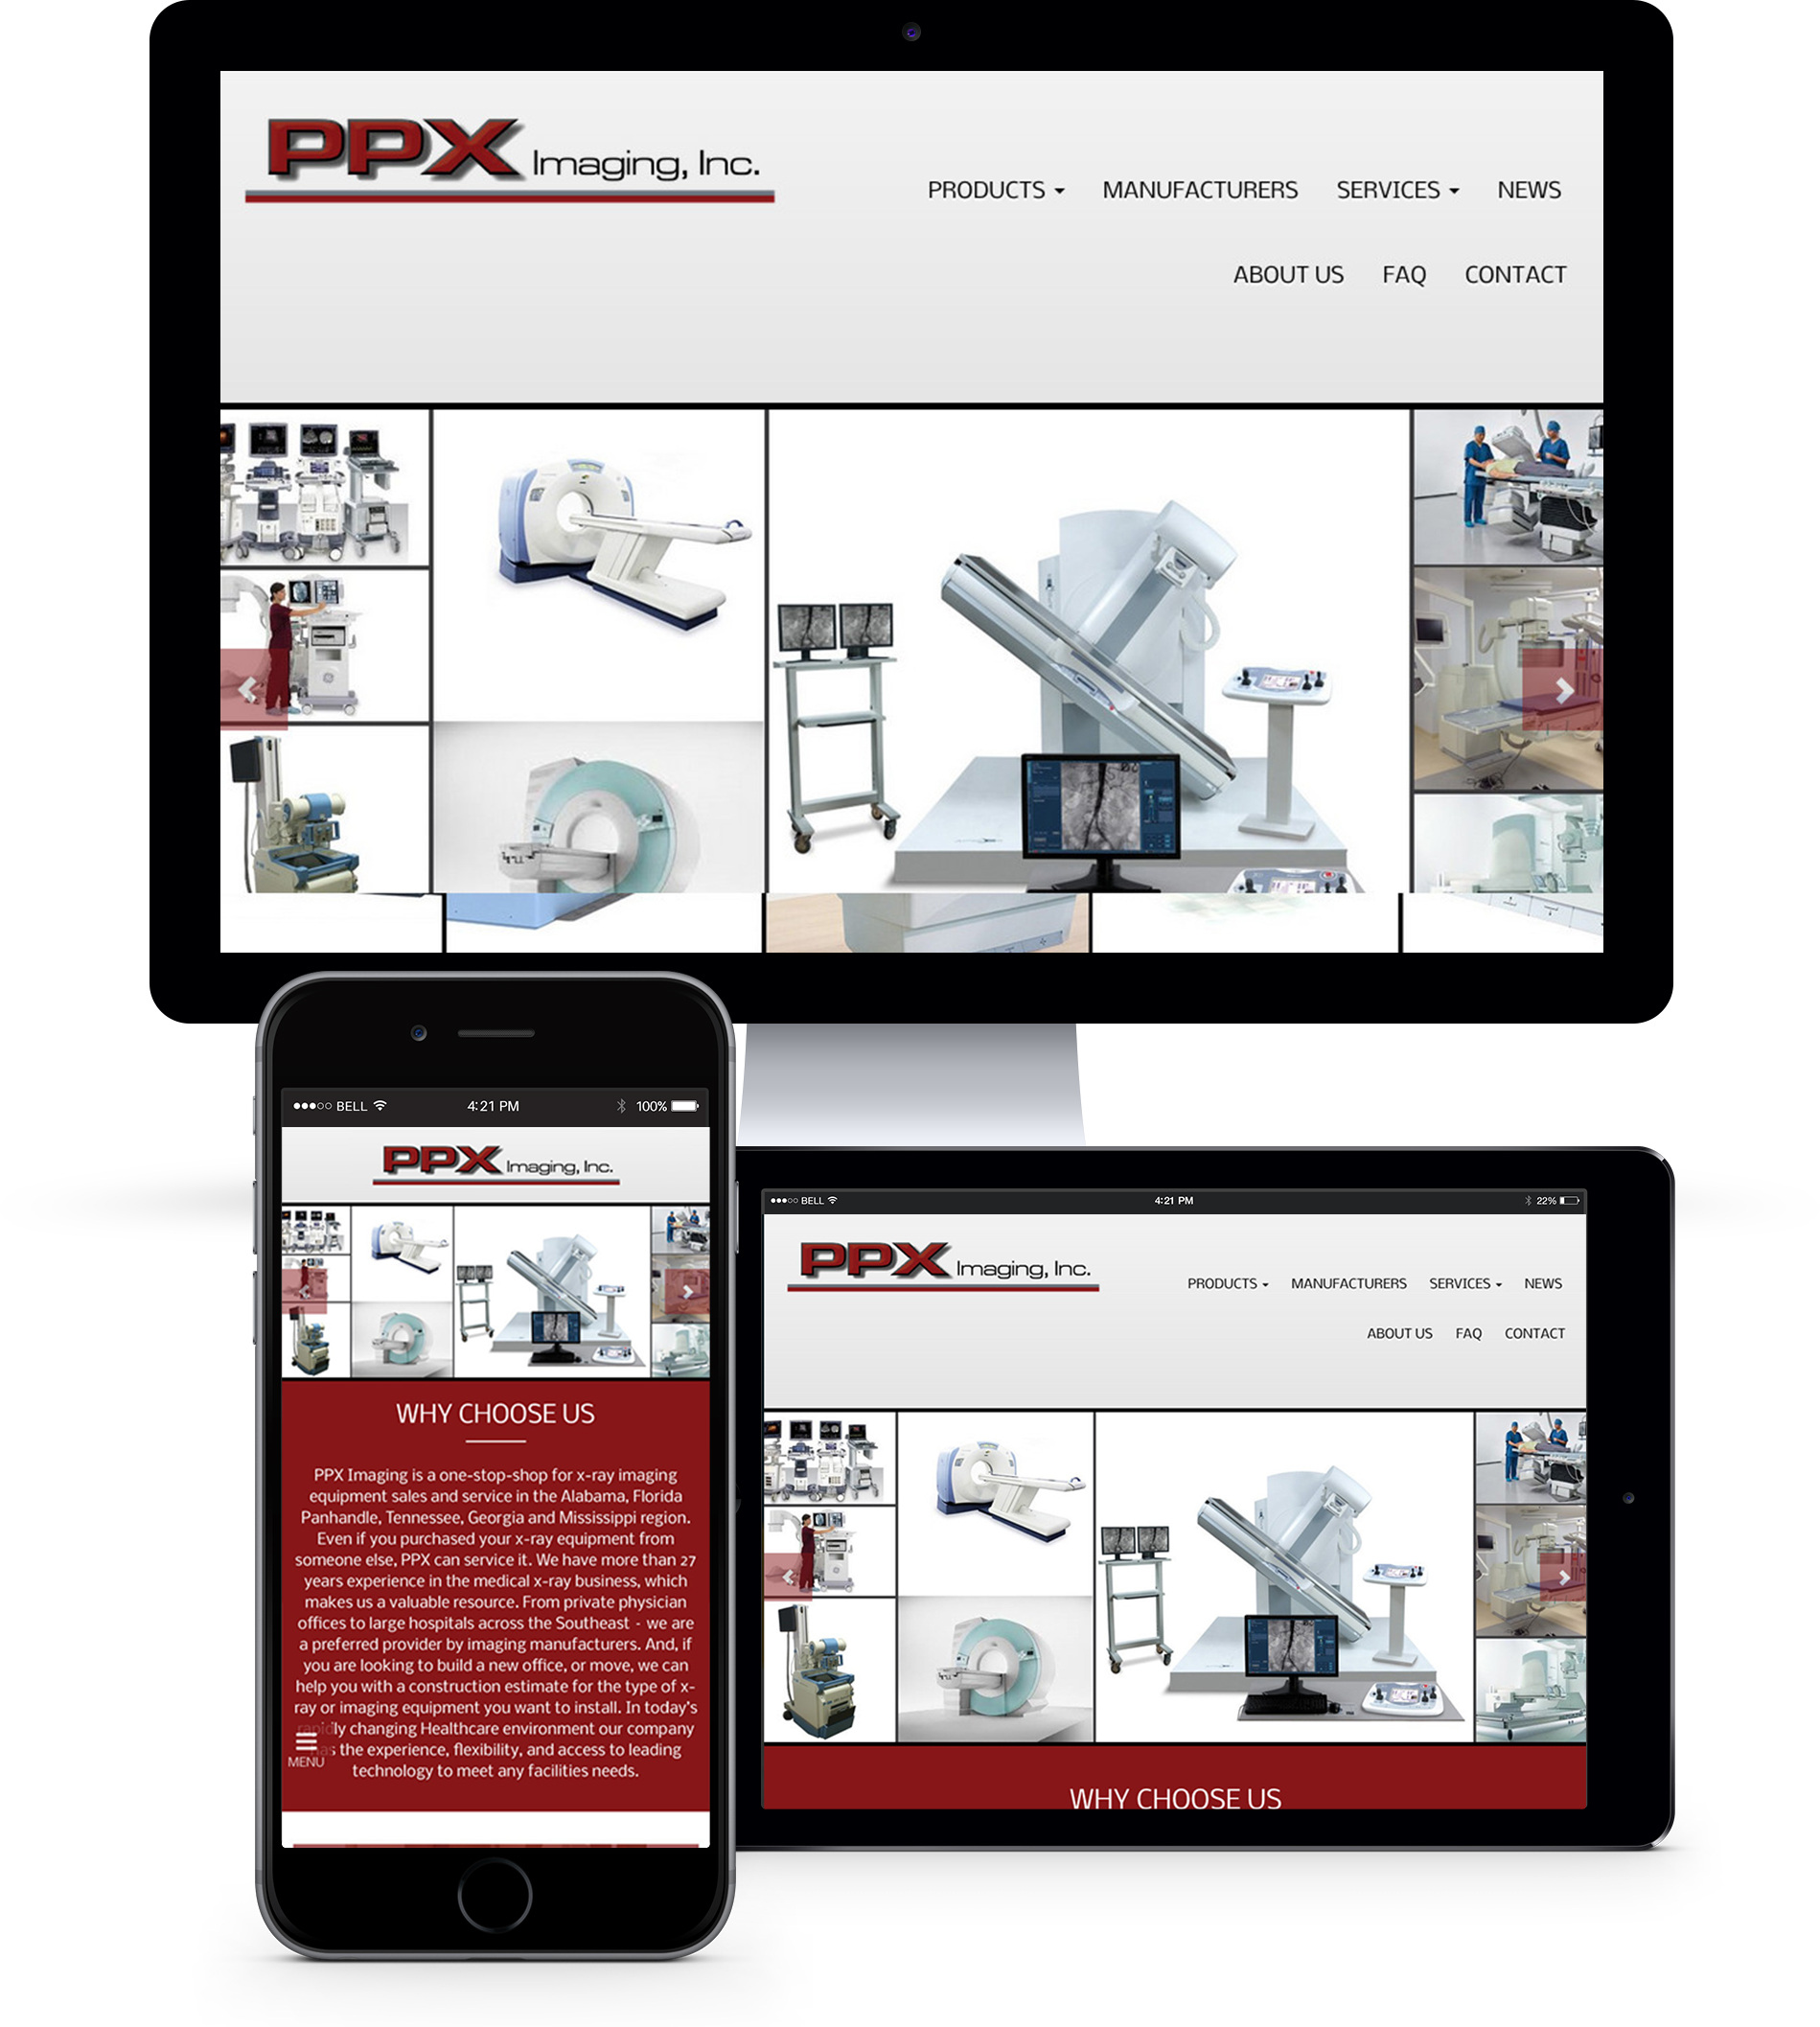 PPX Imaging